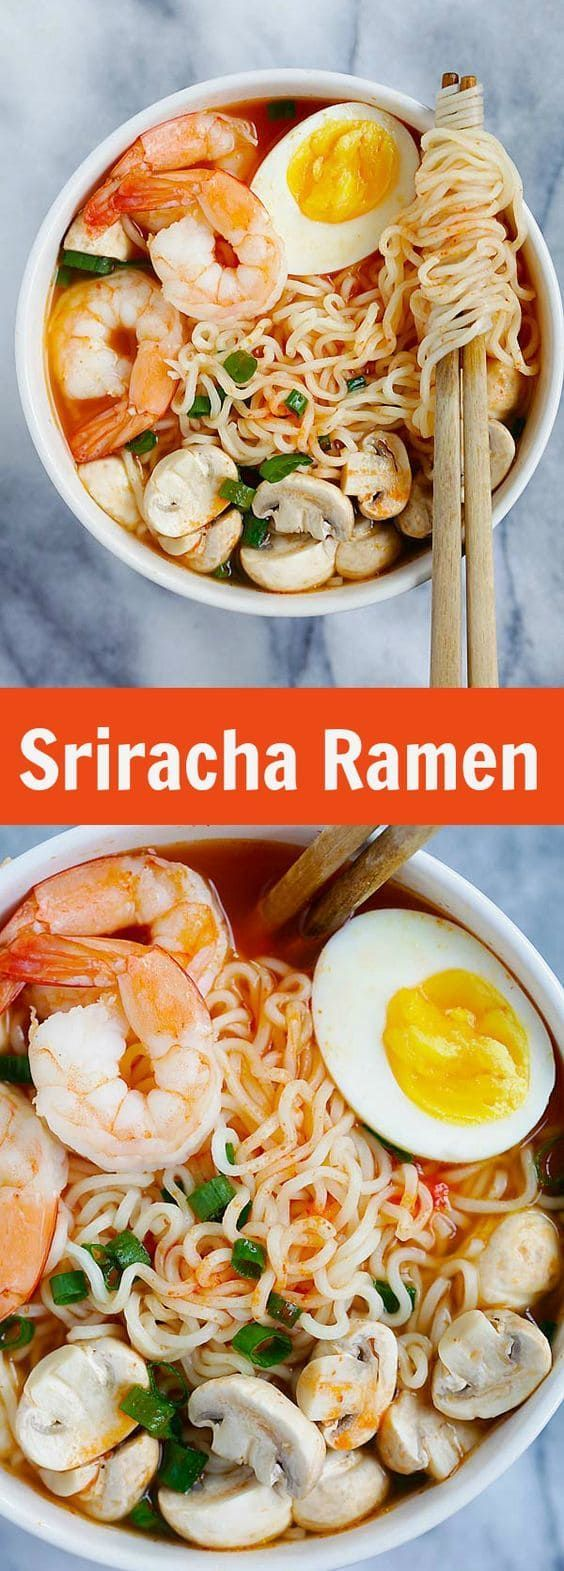 Ramen - the best homemade ramen ever with spicy Sriracha broth and yummy toppings. So easy and takes only 15 minutes |